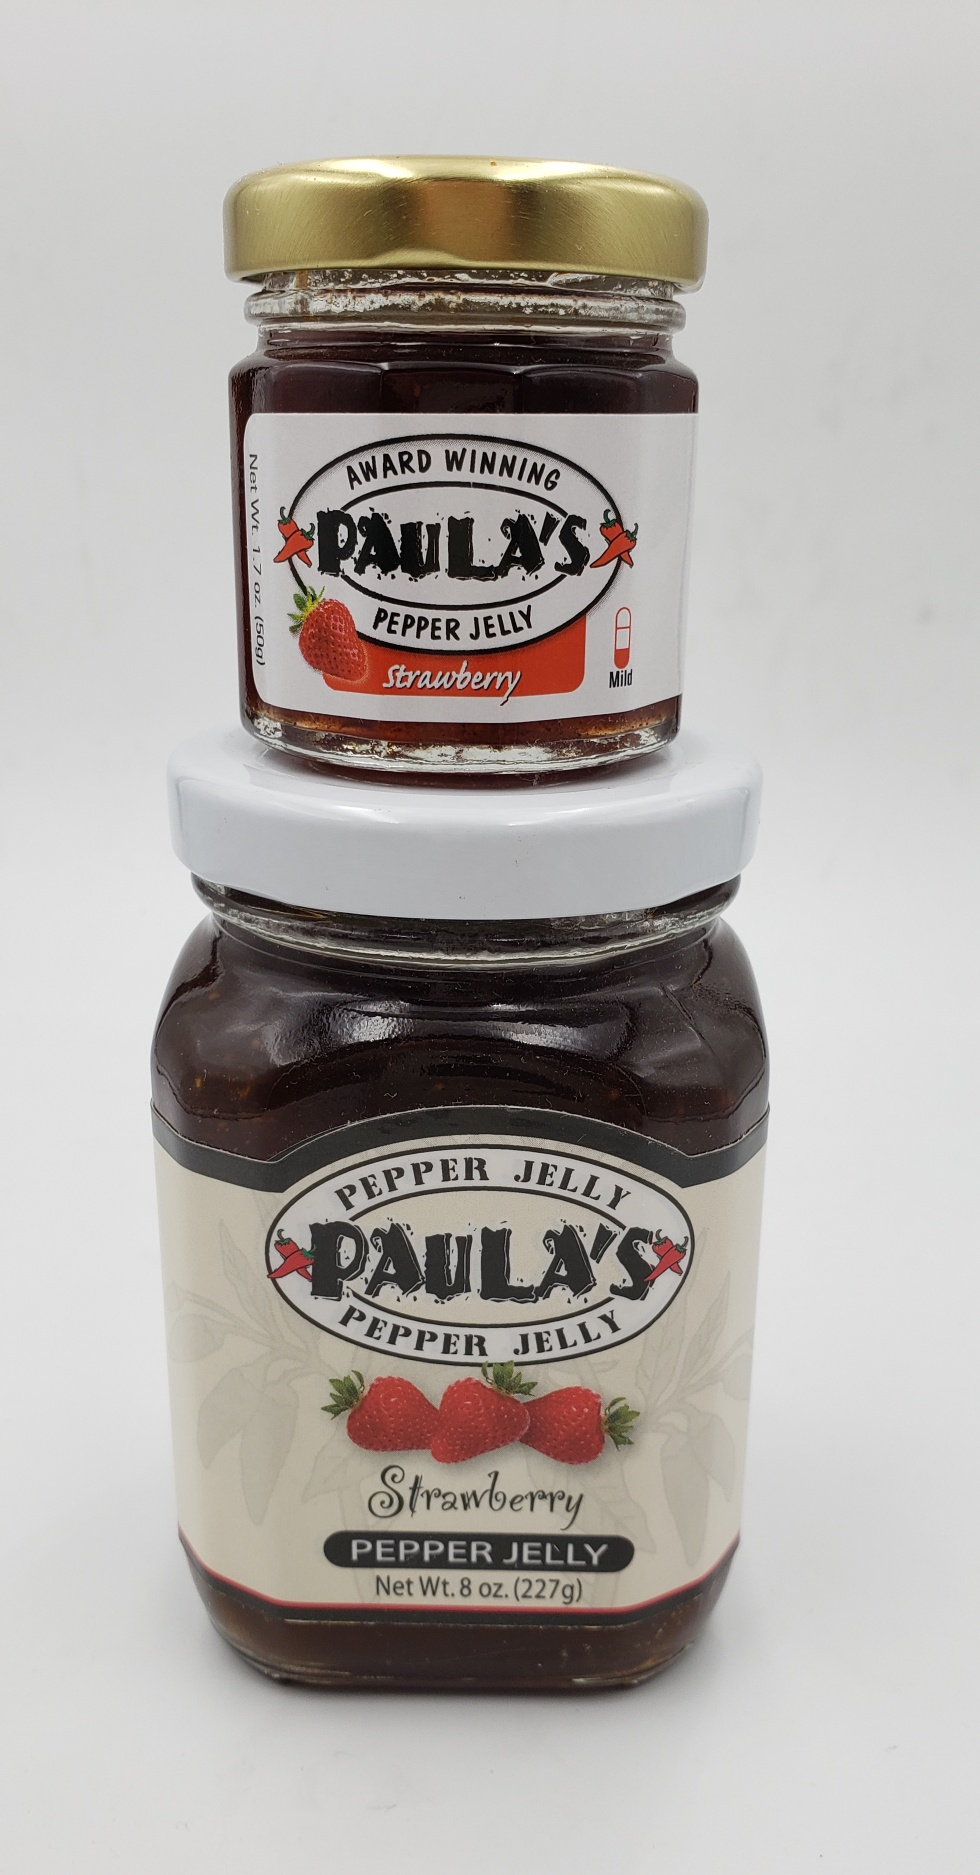 1.7 oz. strawberry pepper jelly jar on top of the 8 oz. Paula's Pepper Jelly jar label-out.